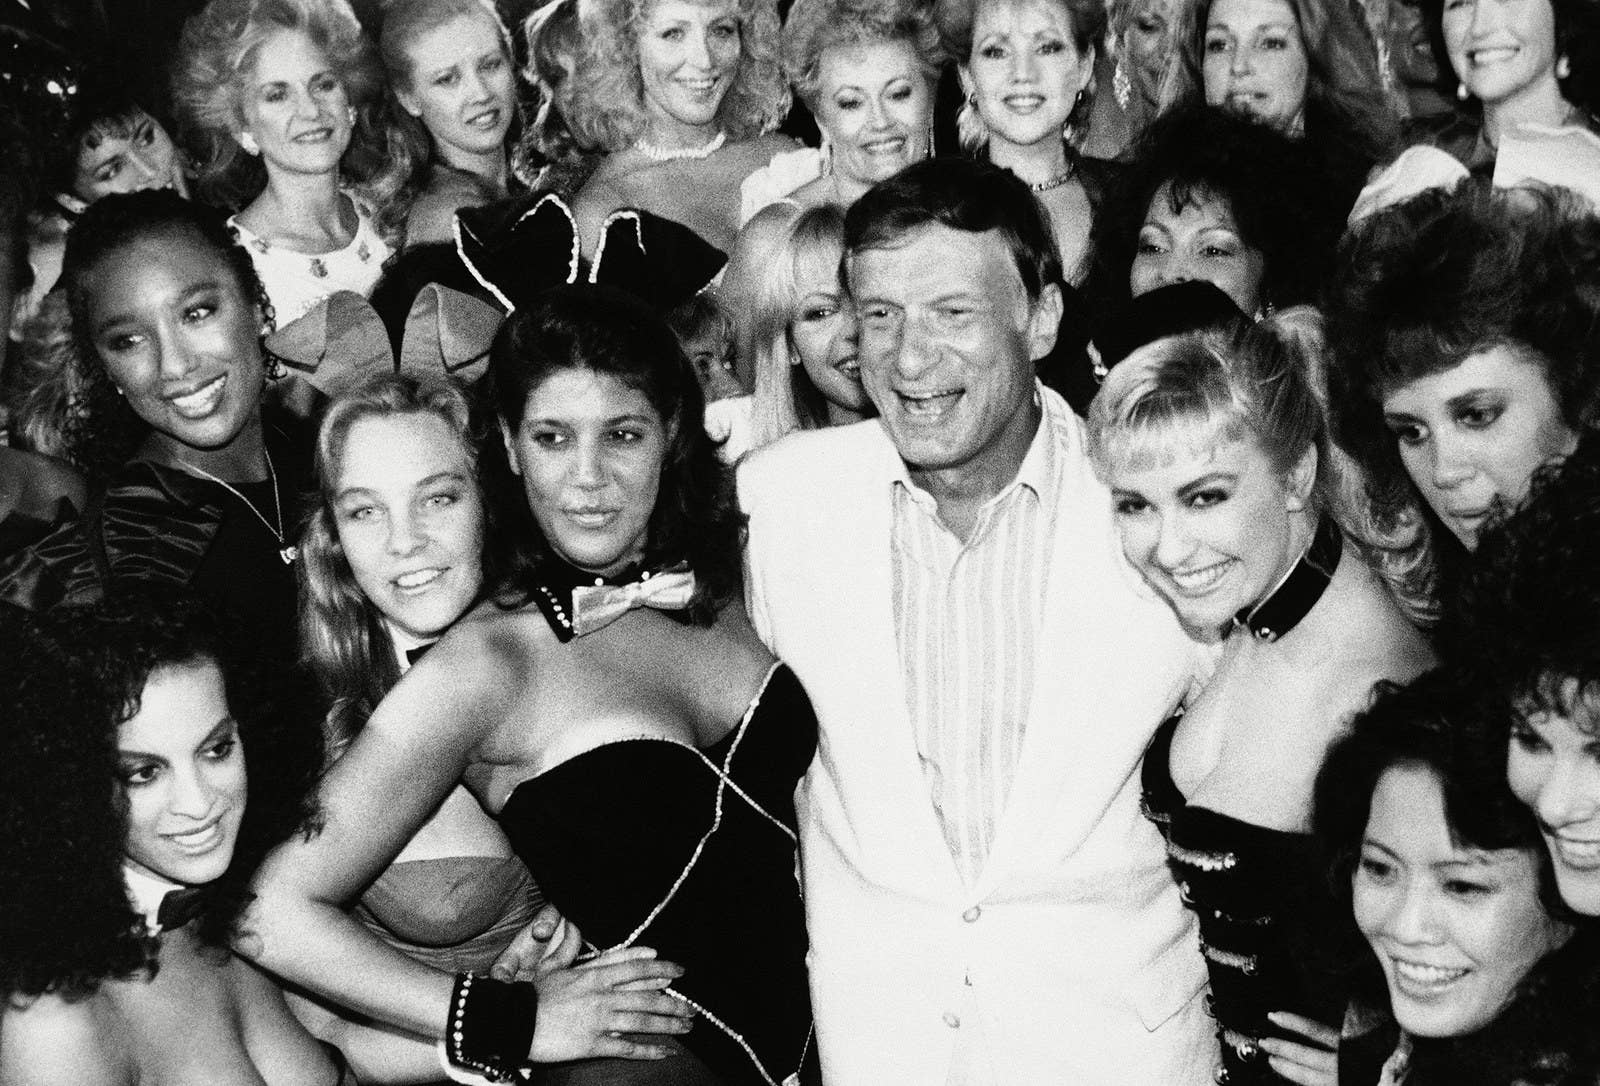 Hefner poses with a group of current and former Playboy Bunnies at the Los Angeles Playboy Club in 1986.